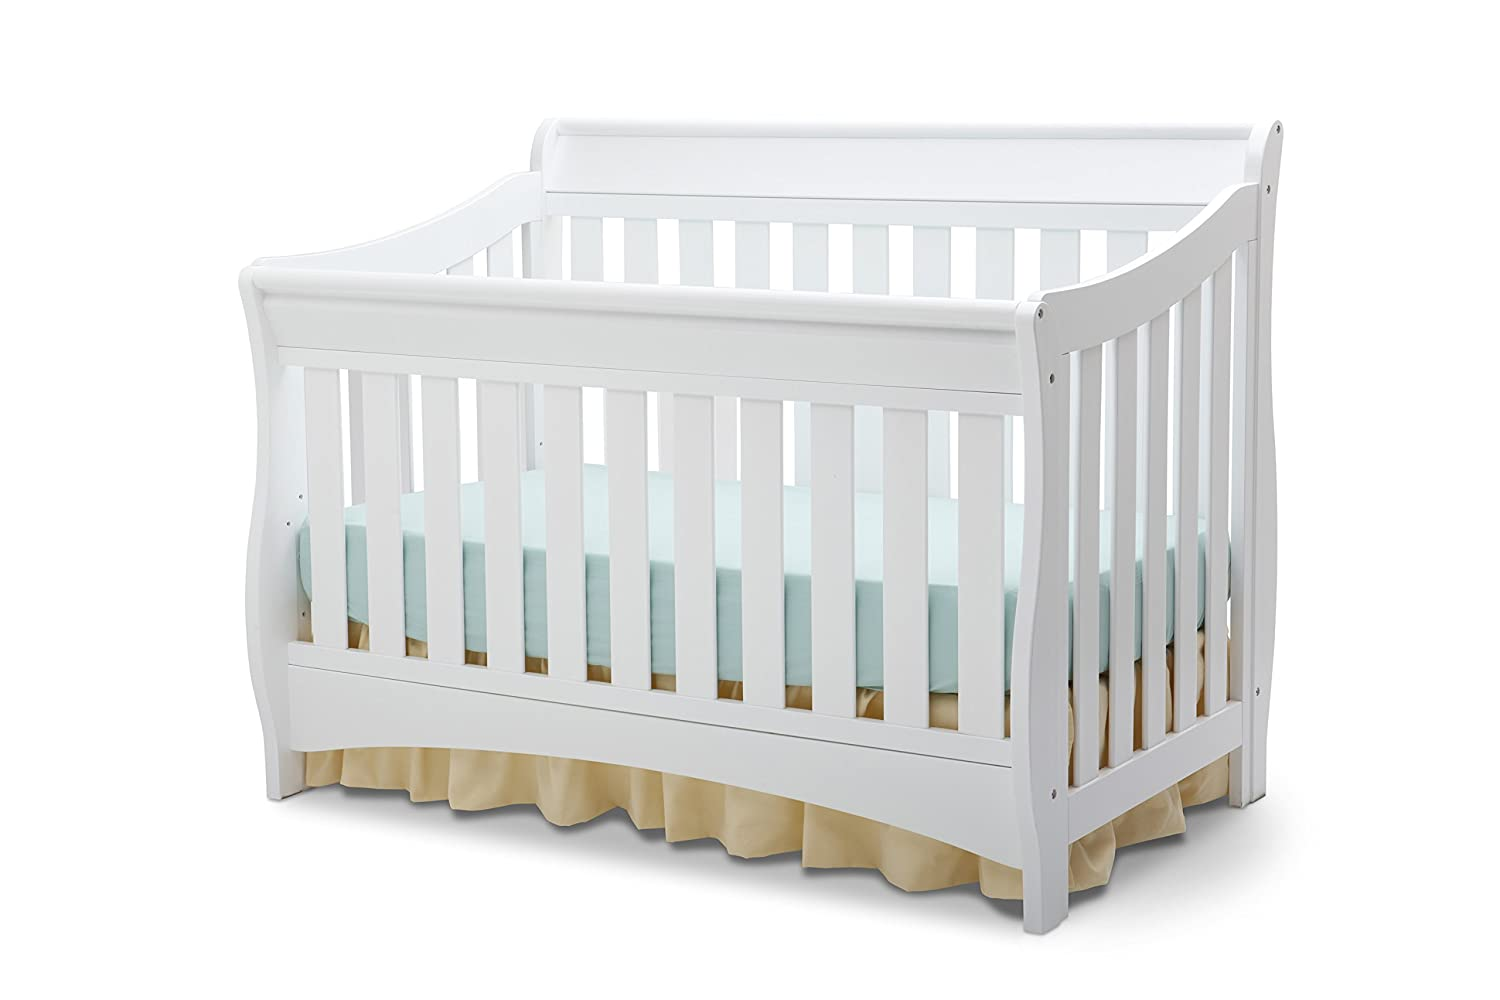 crib side convertible c assembly silo customercare cribs instructions classic in